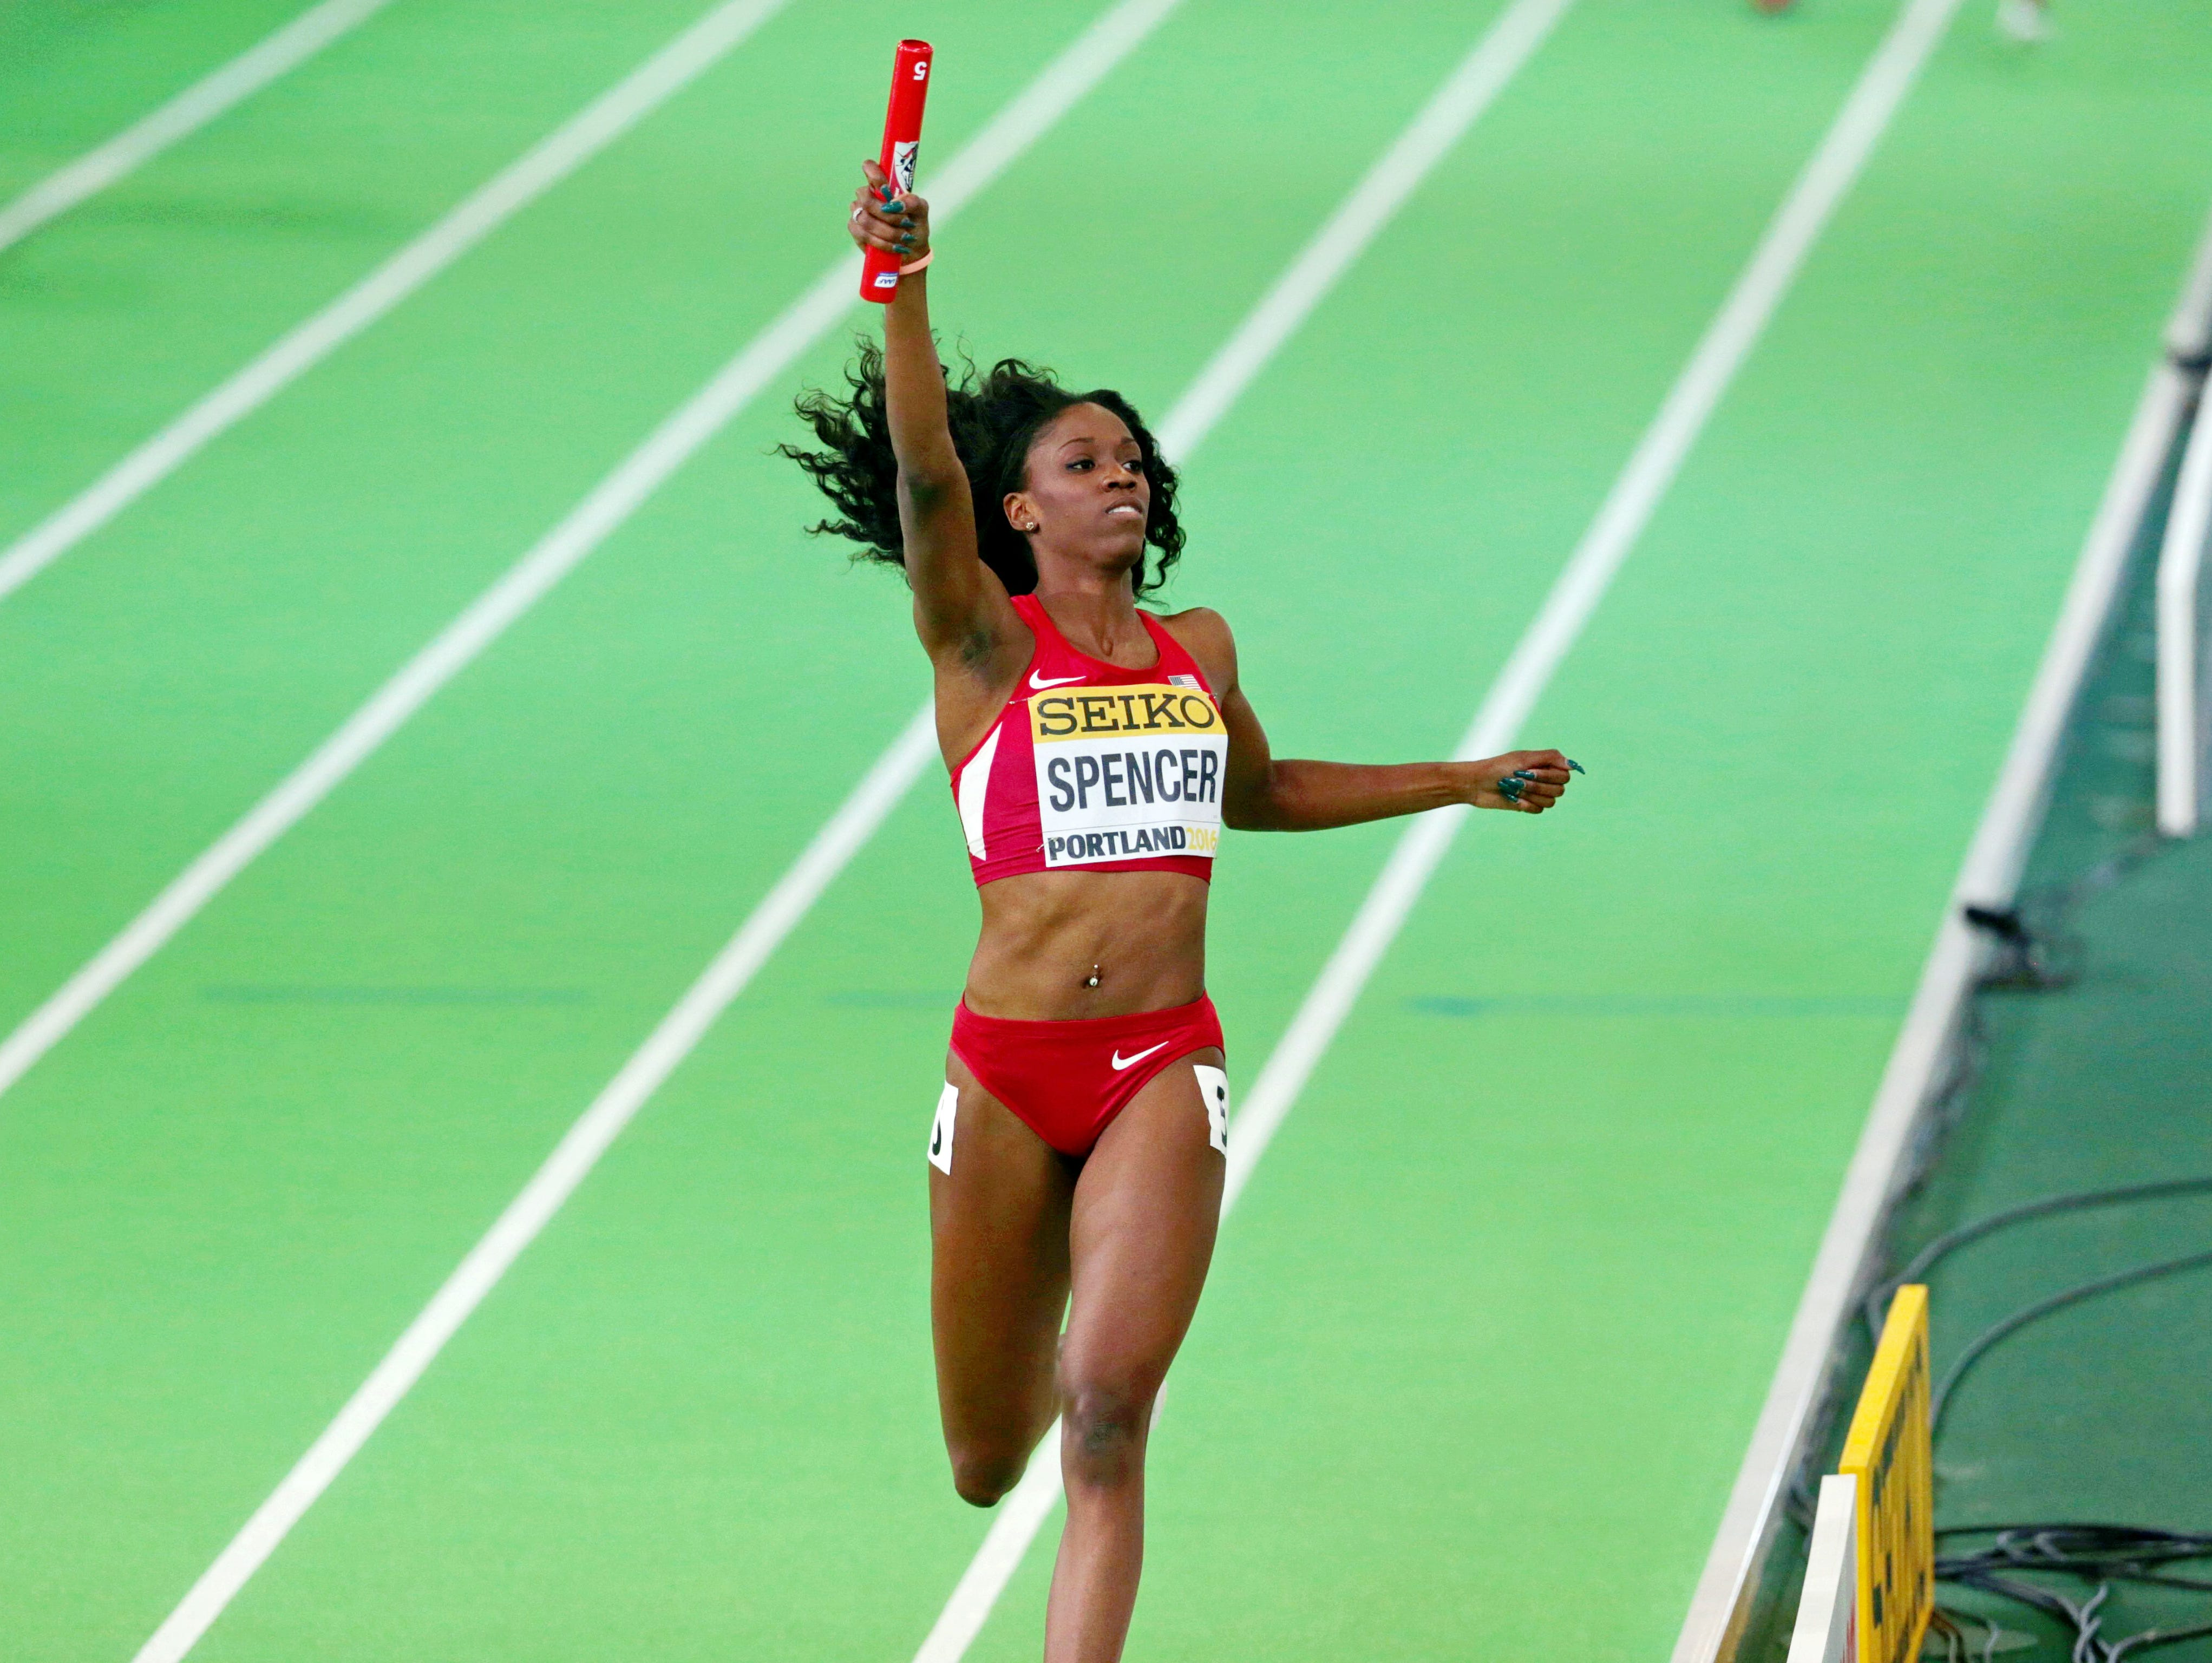 Ashley Spencer USA) win the women's 4x400m relay (3:26.38)at Oregon Convention Center.